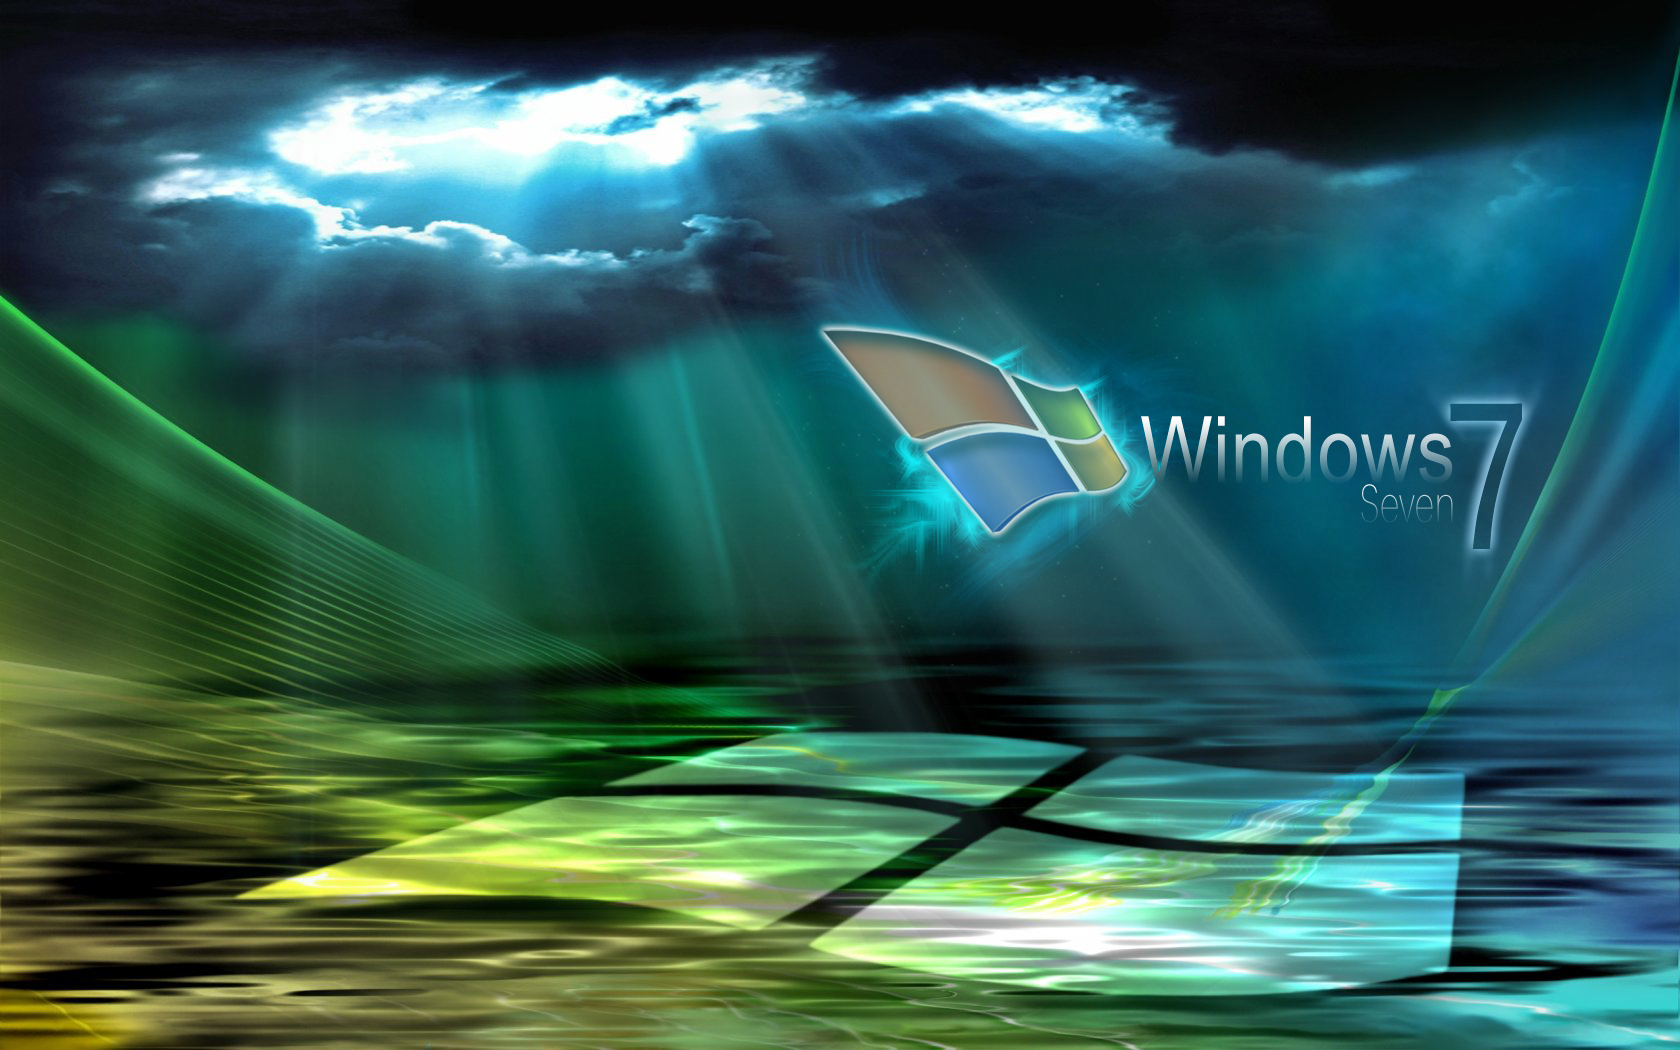 Description Windows 7 HD Wallpaper is a hi res Wallpaper for pc 1680x1050